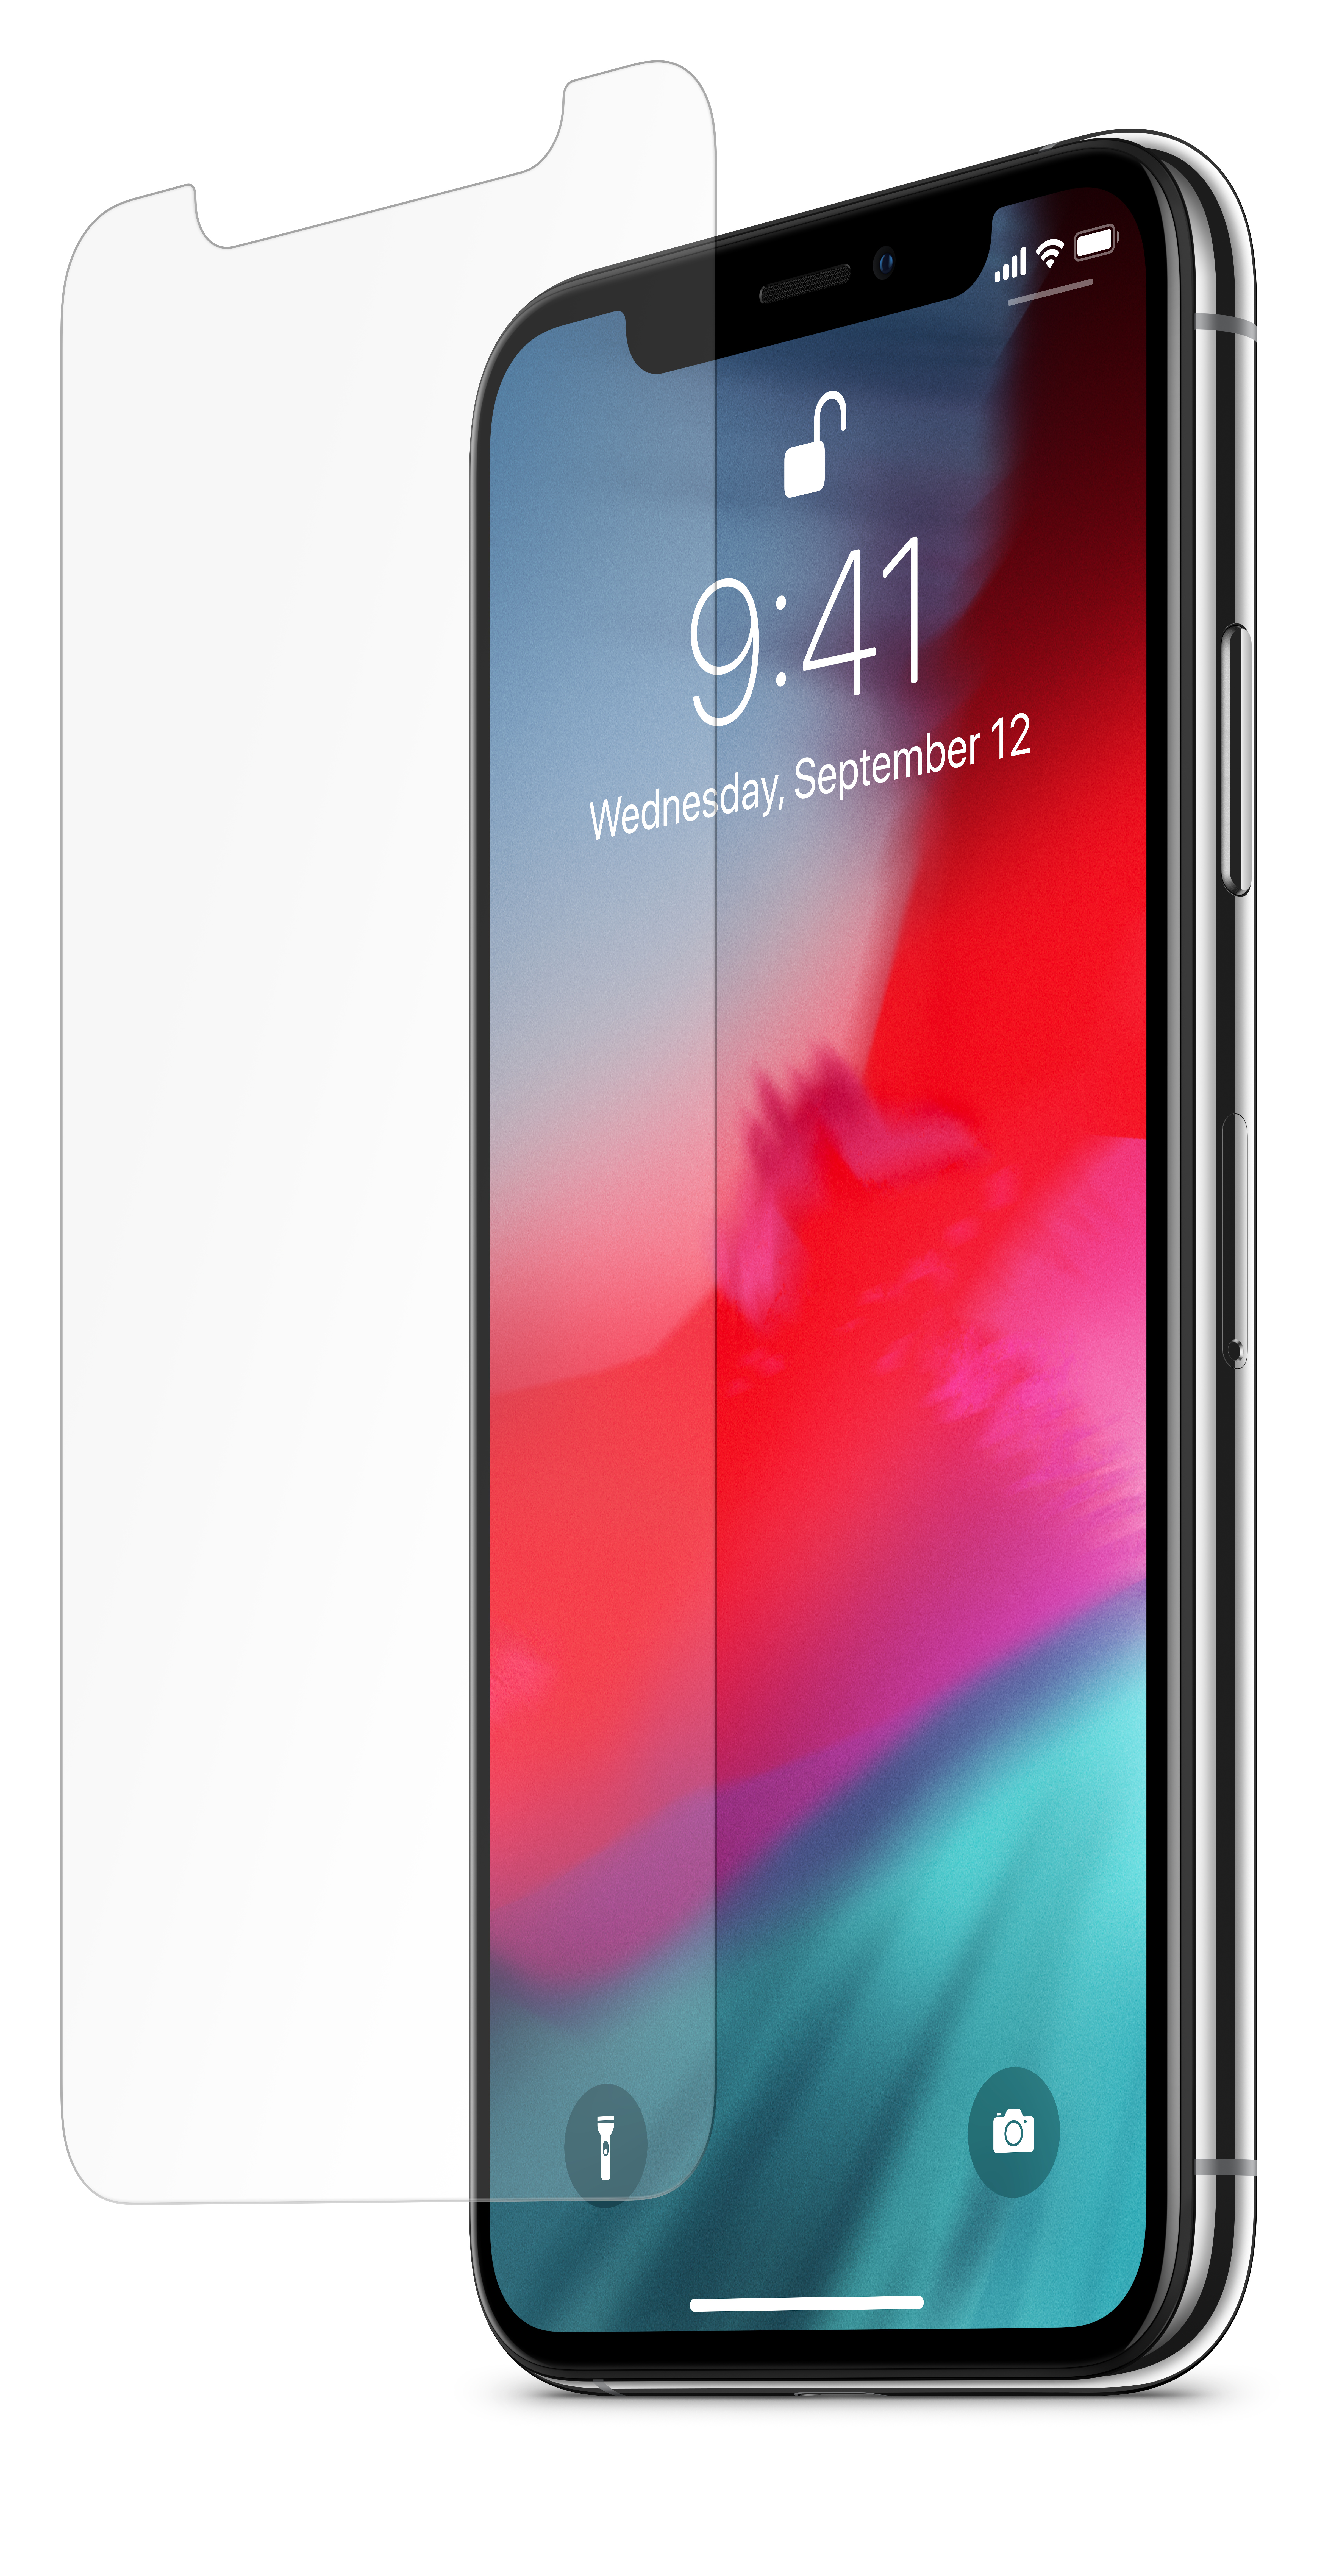 reputable site cee5b 63fb3 Belkin Anti-Glare Screen Protection for iPhone X / XS